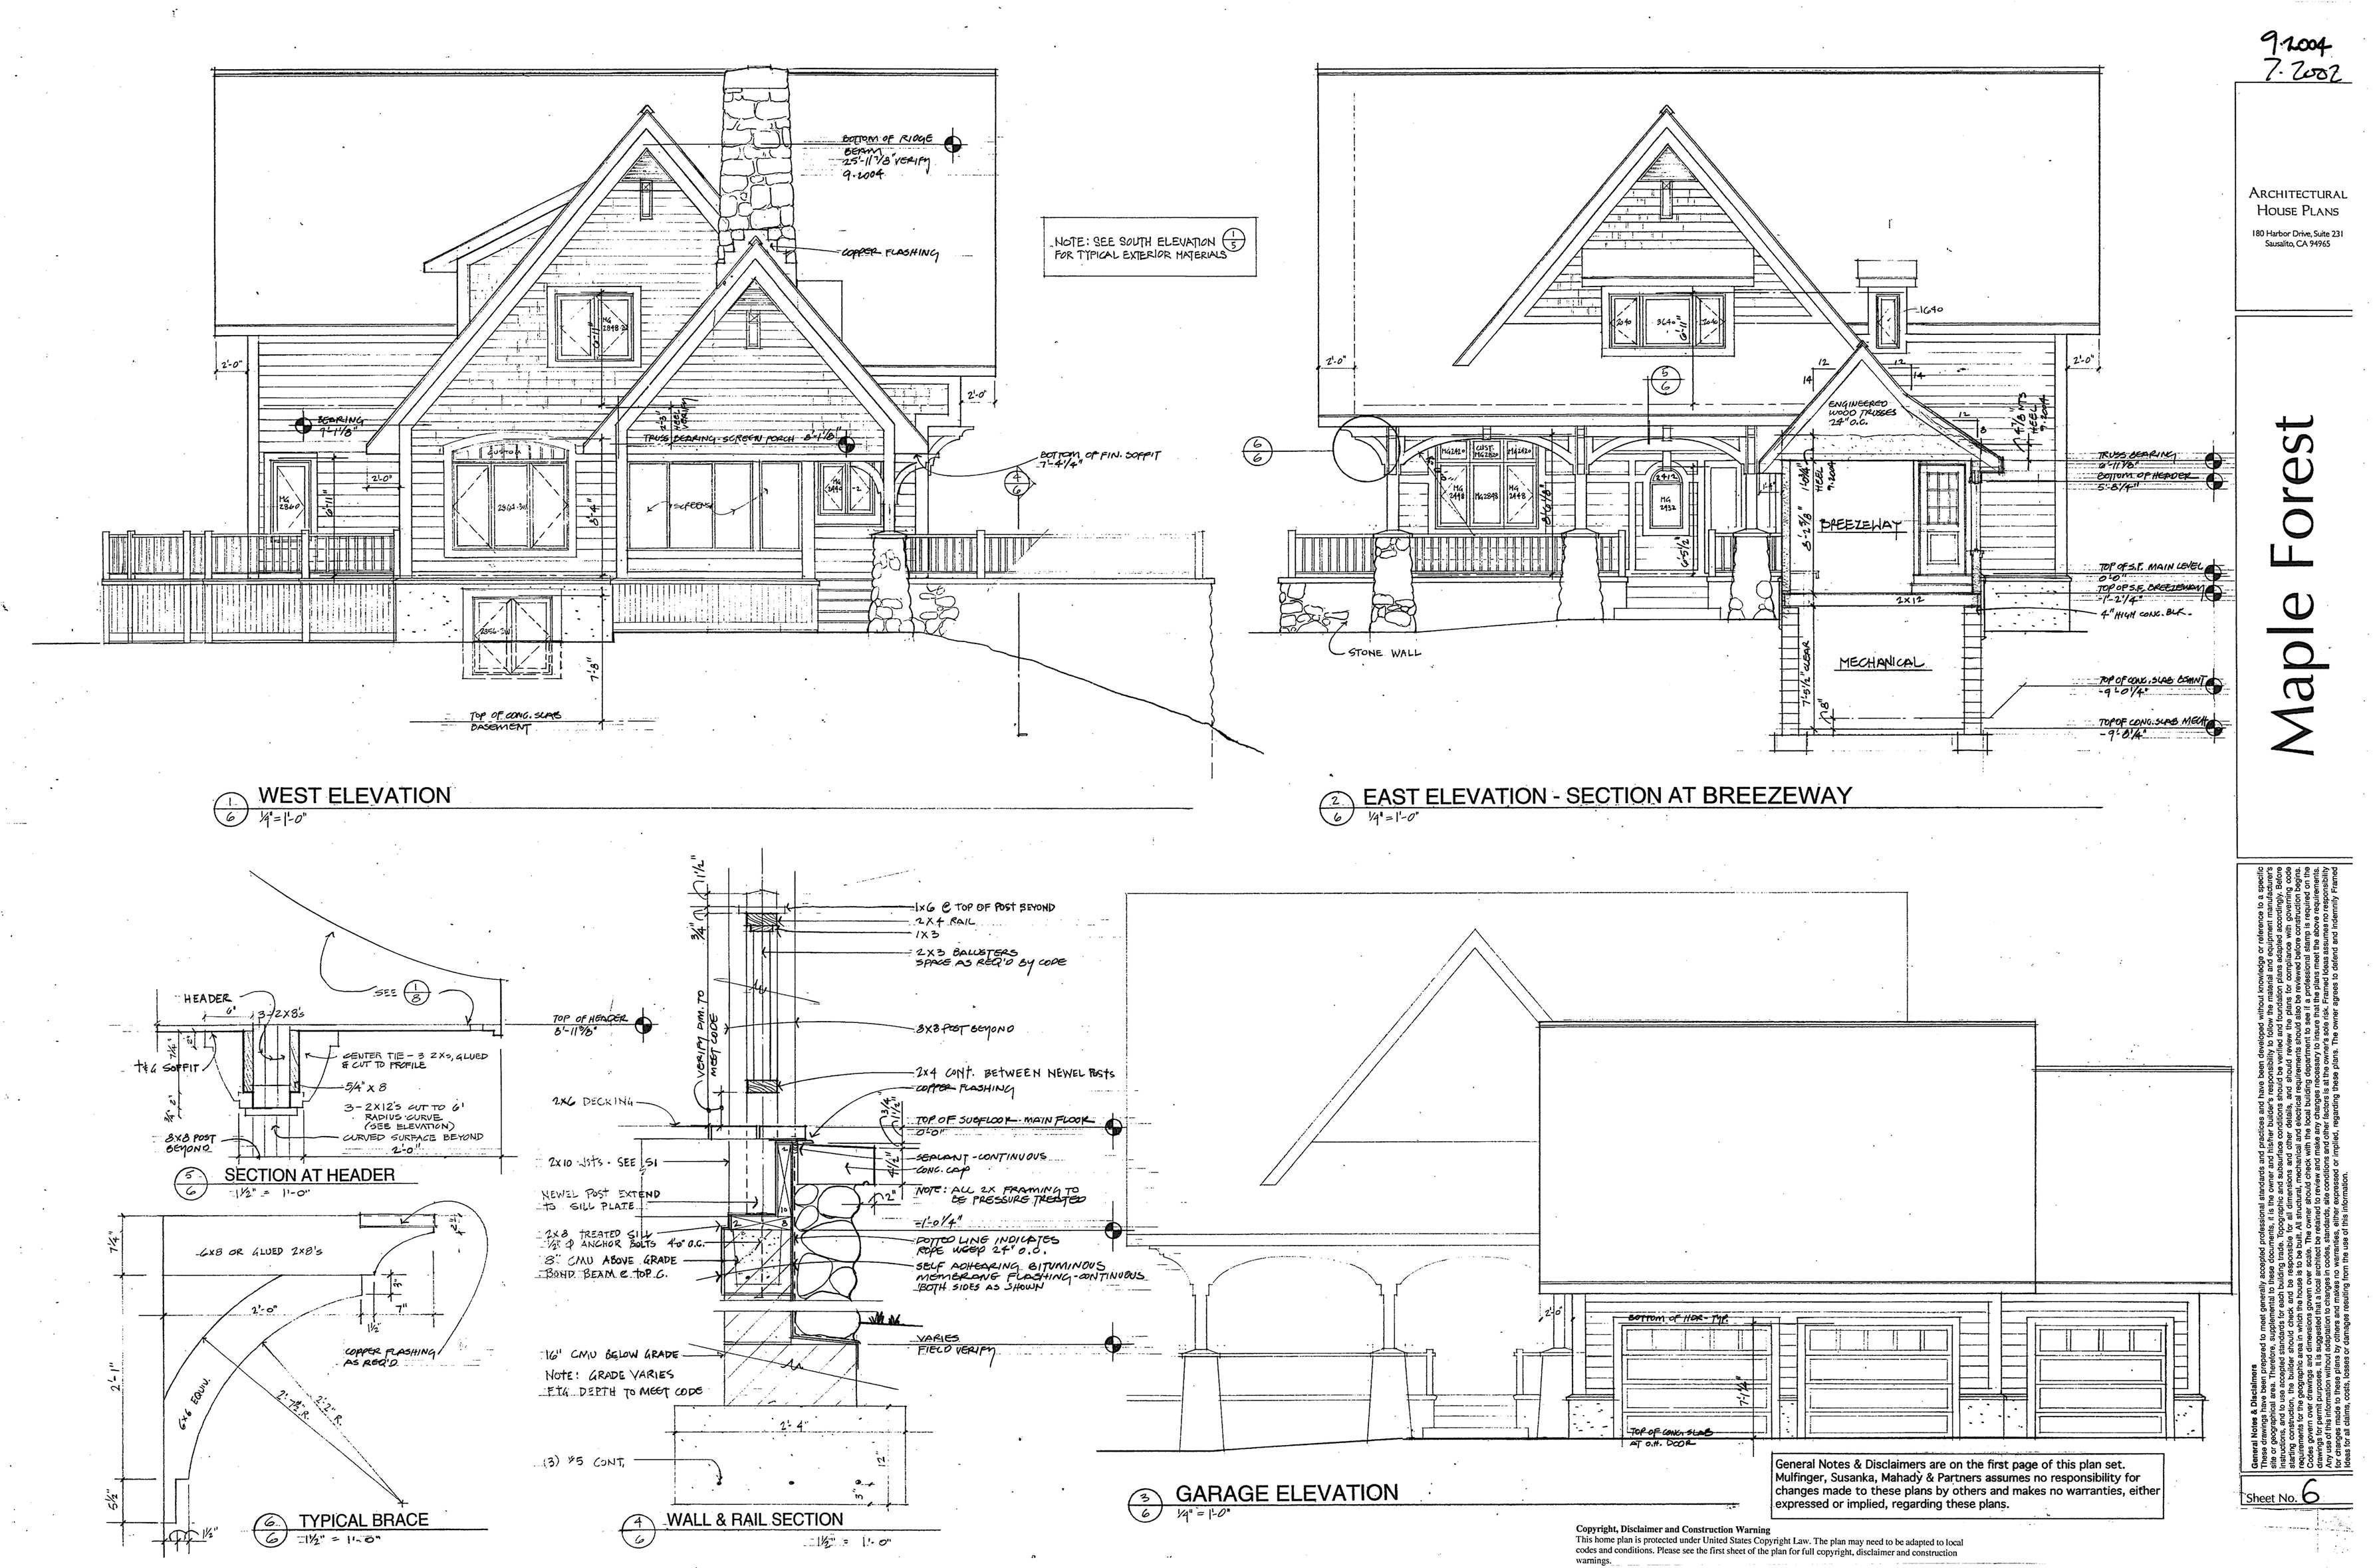 Architectural cad drawings bingbingwang pinterest Autocad house drawings